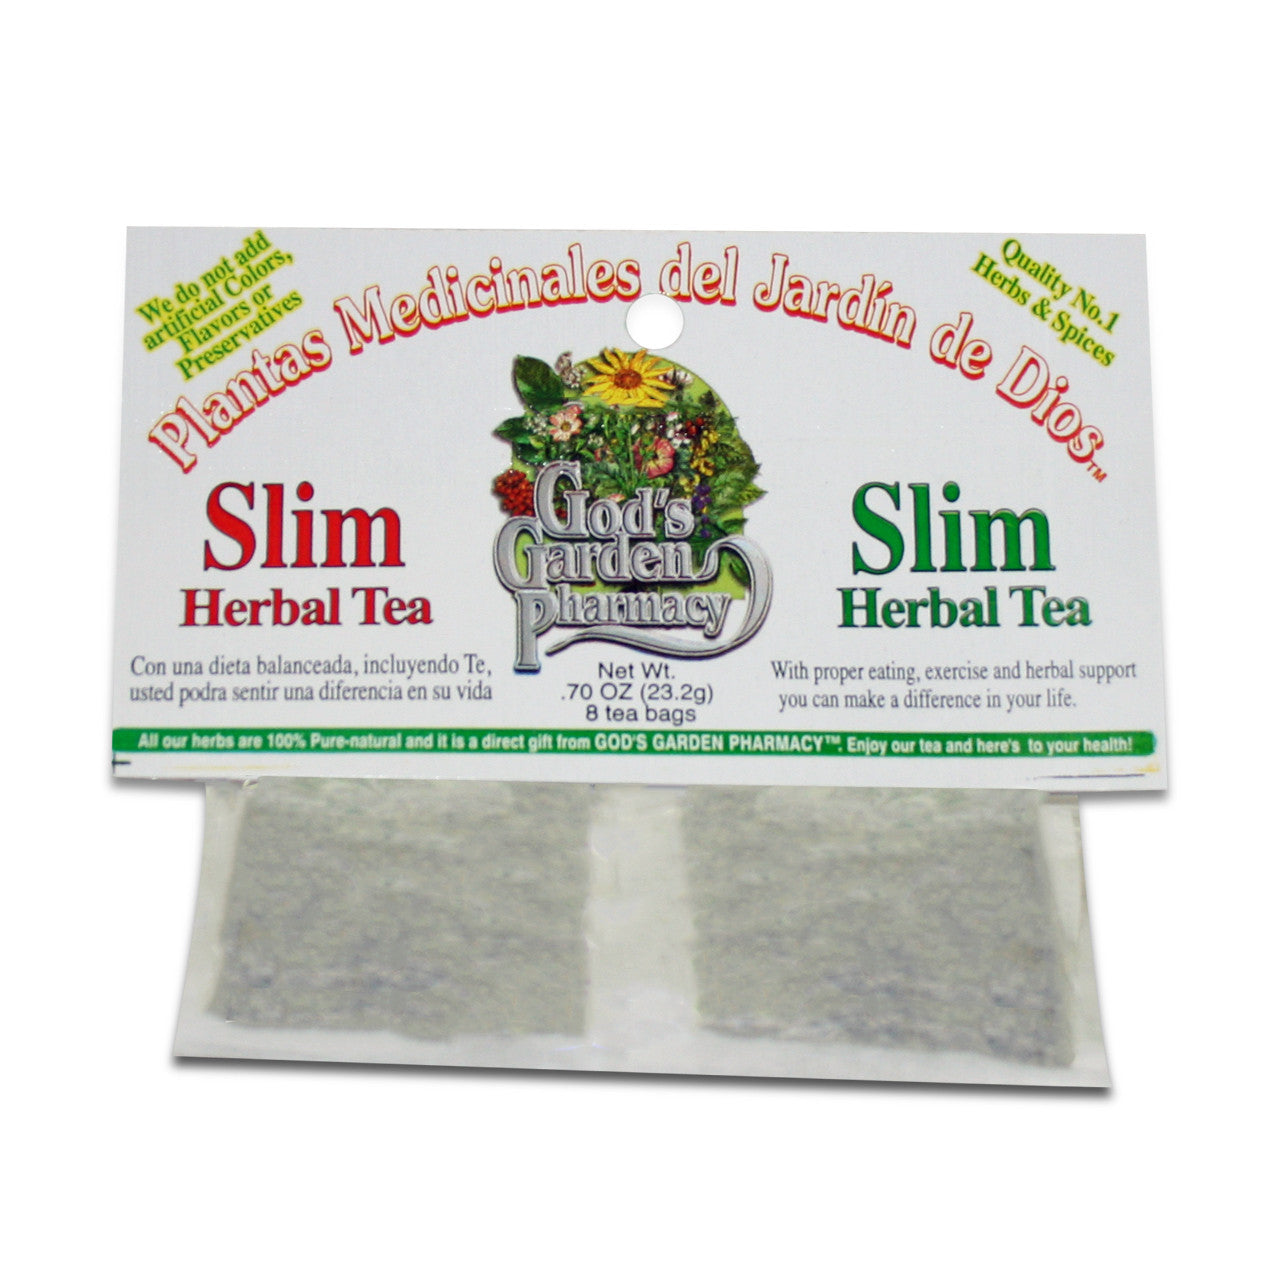 Slim Herbal Tea